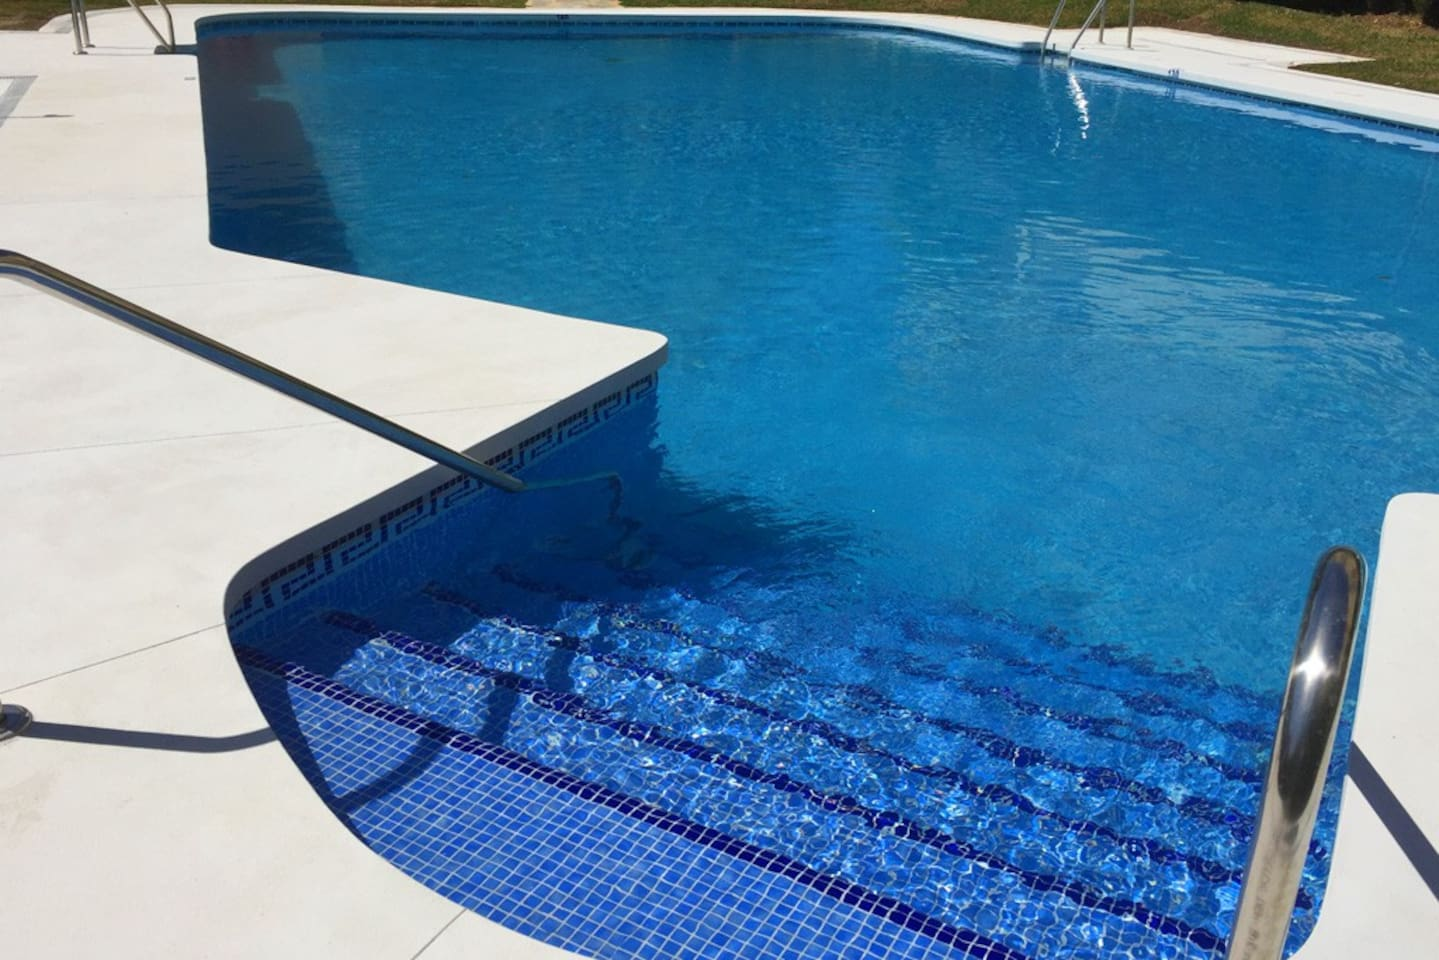 Newly renovated swimming pool/Piscina recién reformada